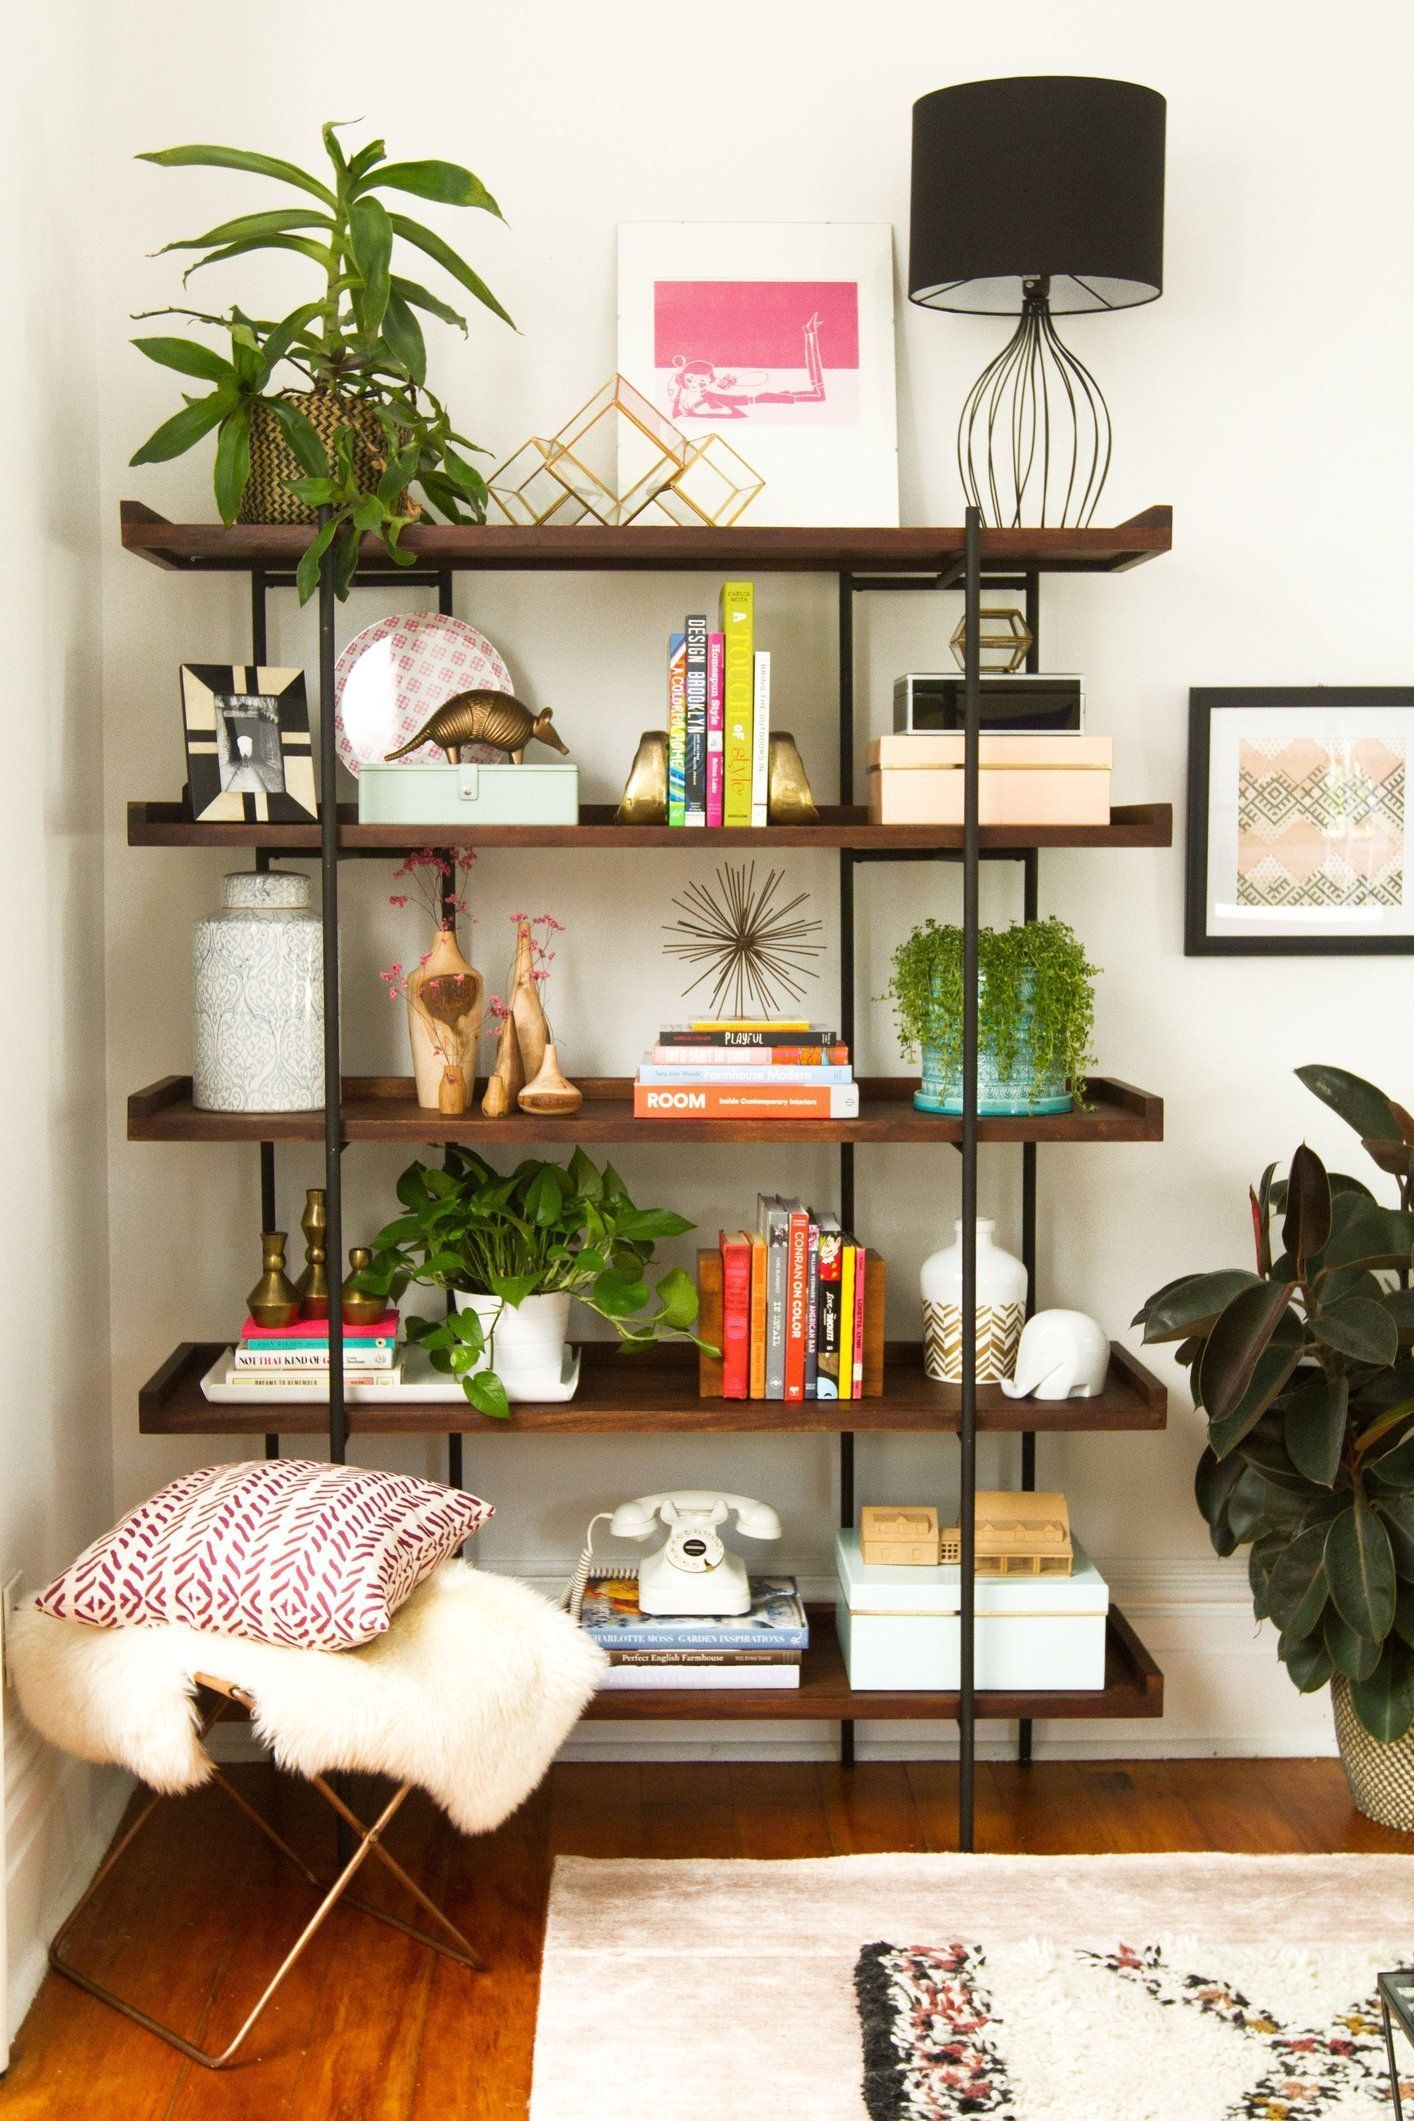 How To Style Bookshelves Layer By Layer | Ashley s, Tabletop and Empty